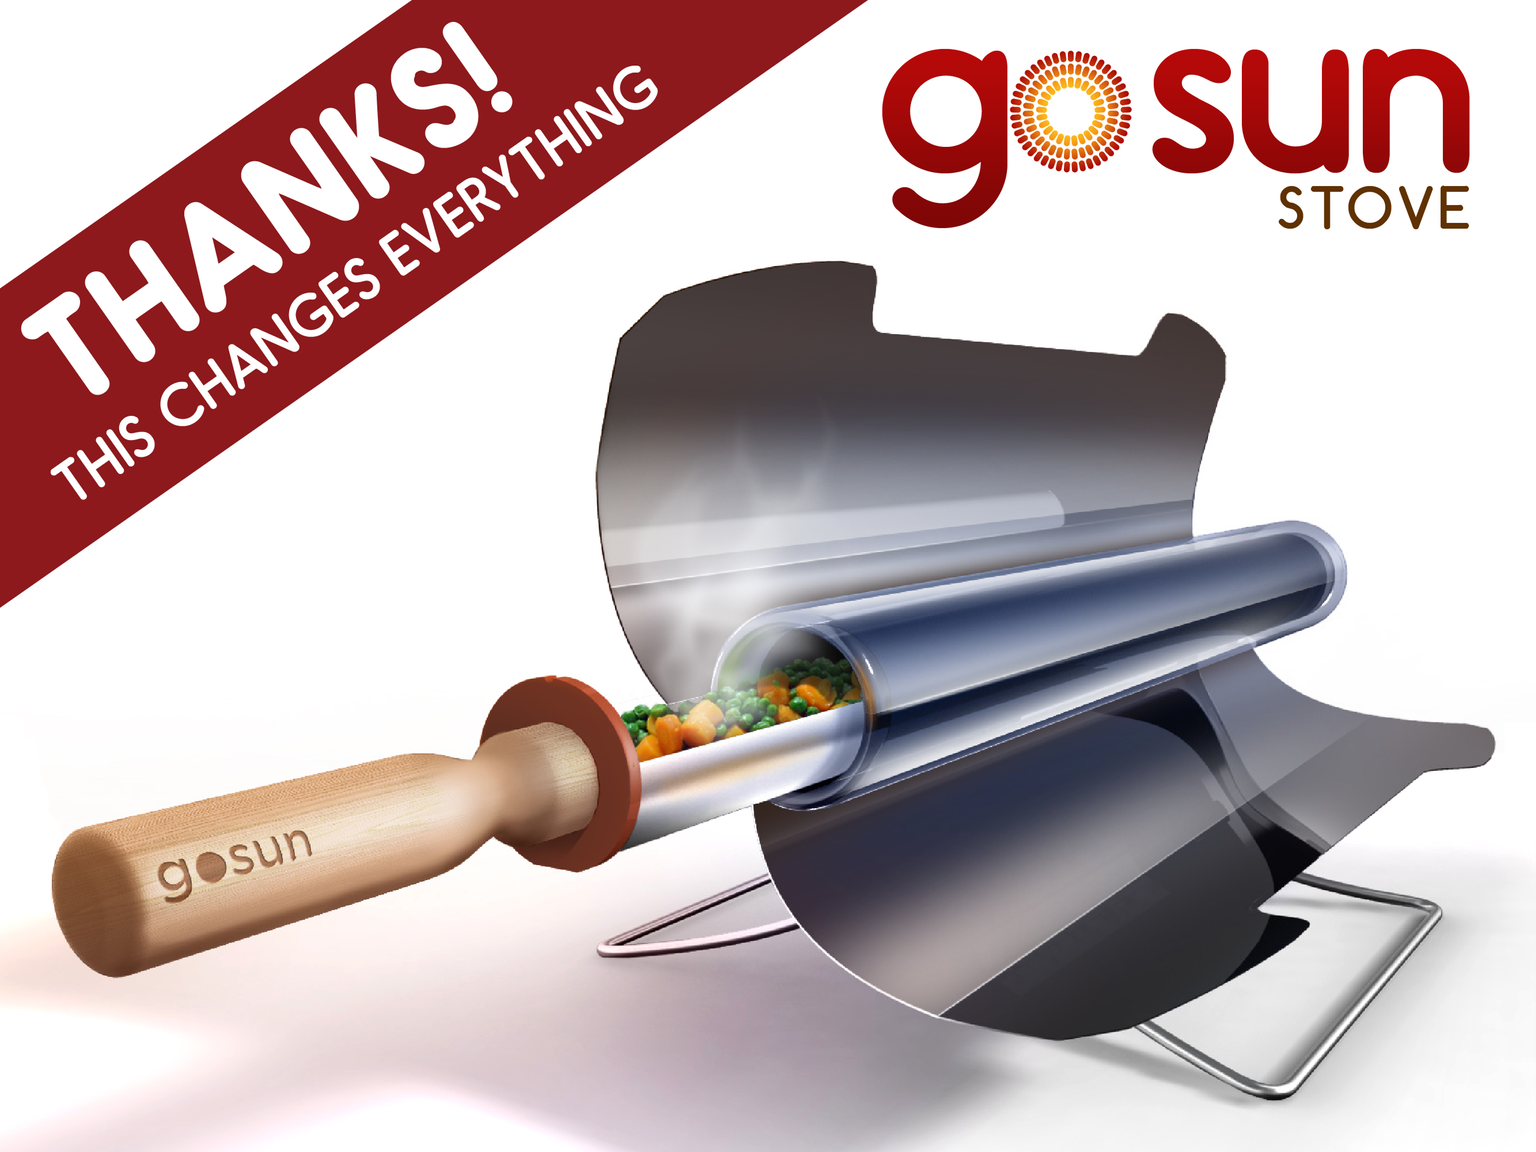 Only 20 minutes to a meal, safely sizzling up to 550°F, the GoSun Stove is the first truly practical fuel-free cooking solution.